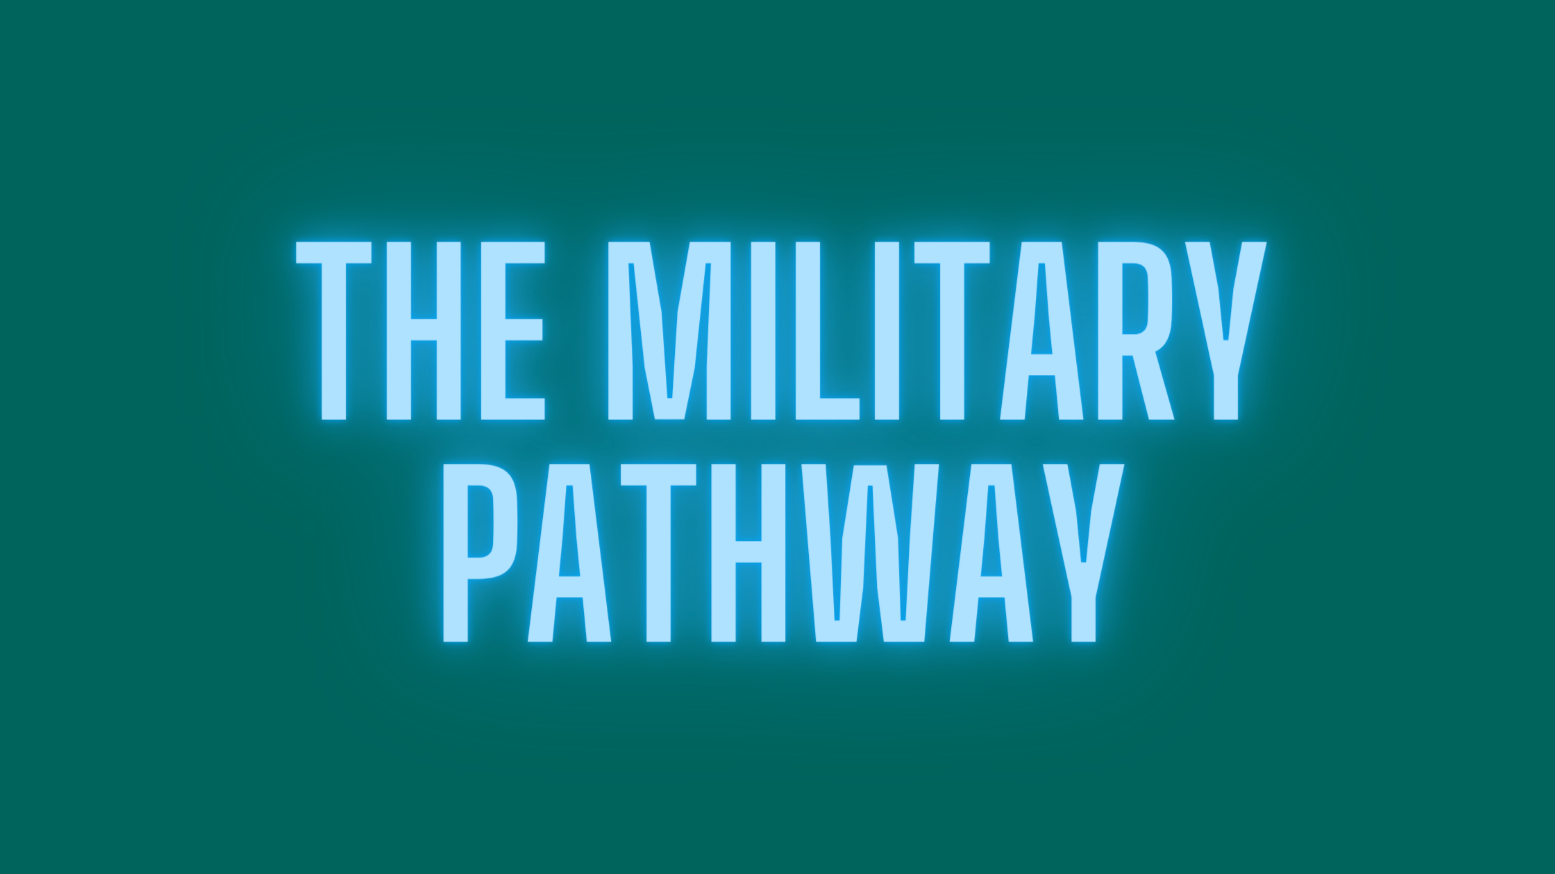 The Military Pathway